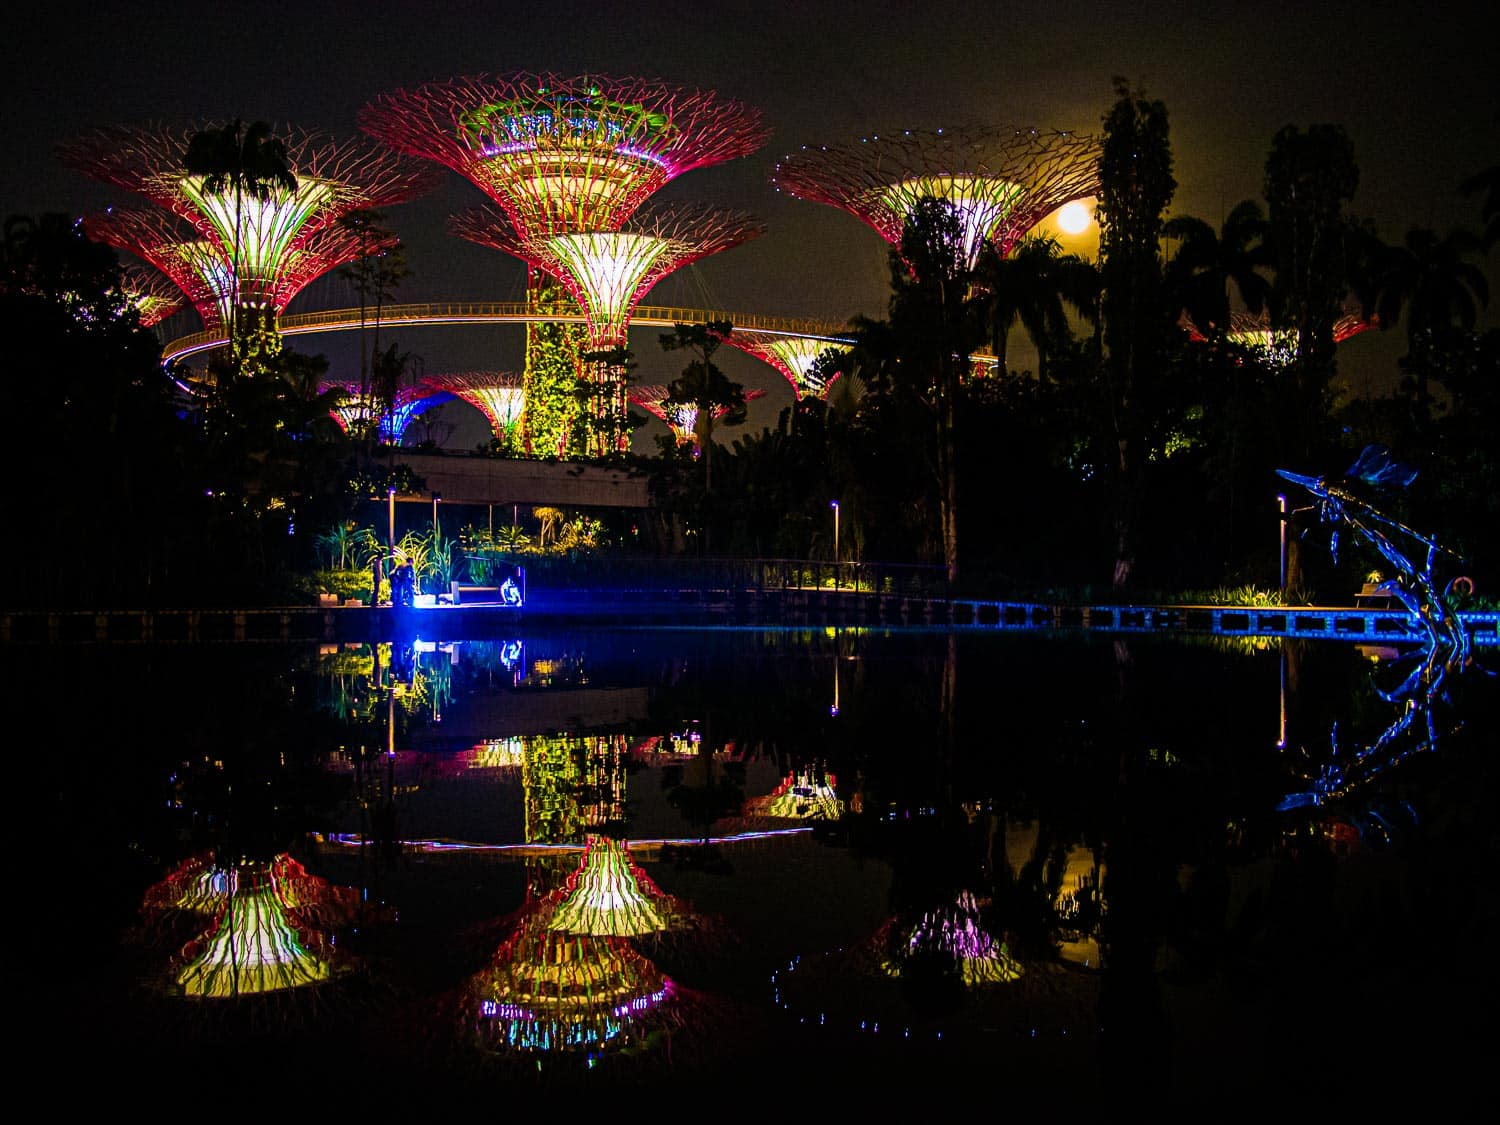 Supertrees at Gardens by the Bay reflected in a pond - one of the highlights of any Singapore itinerary